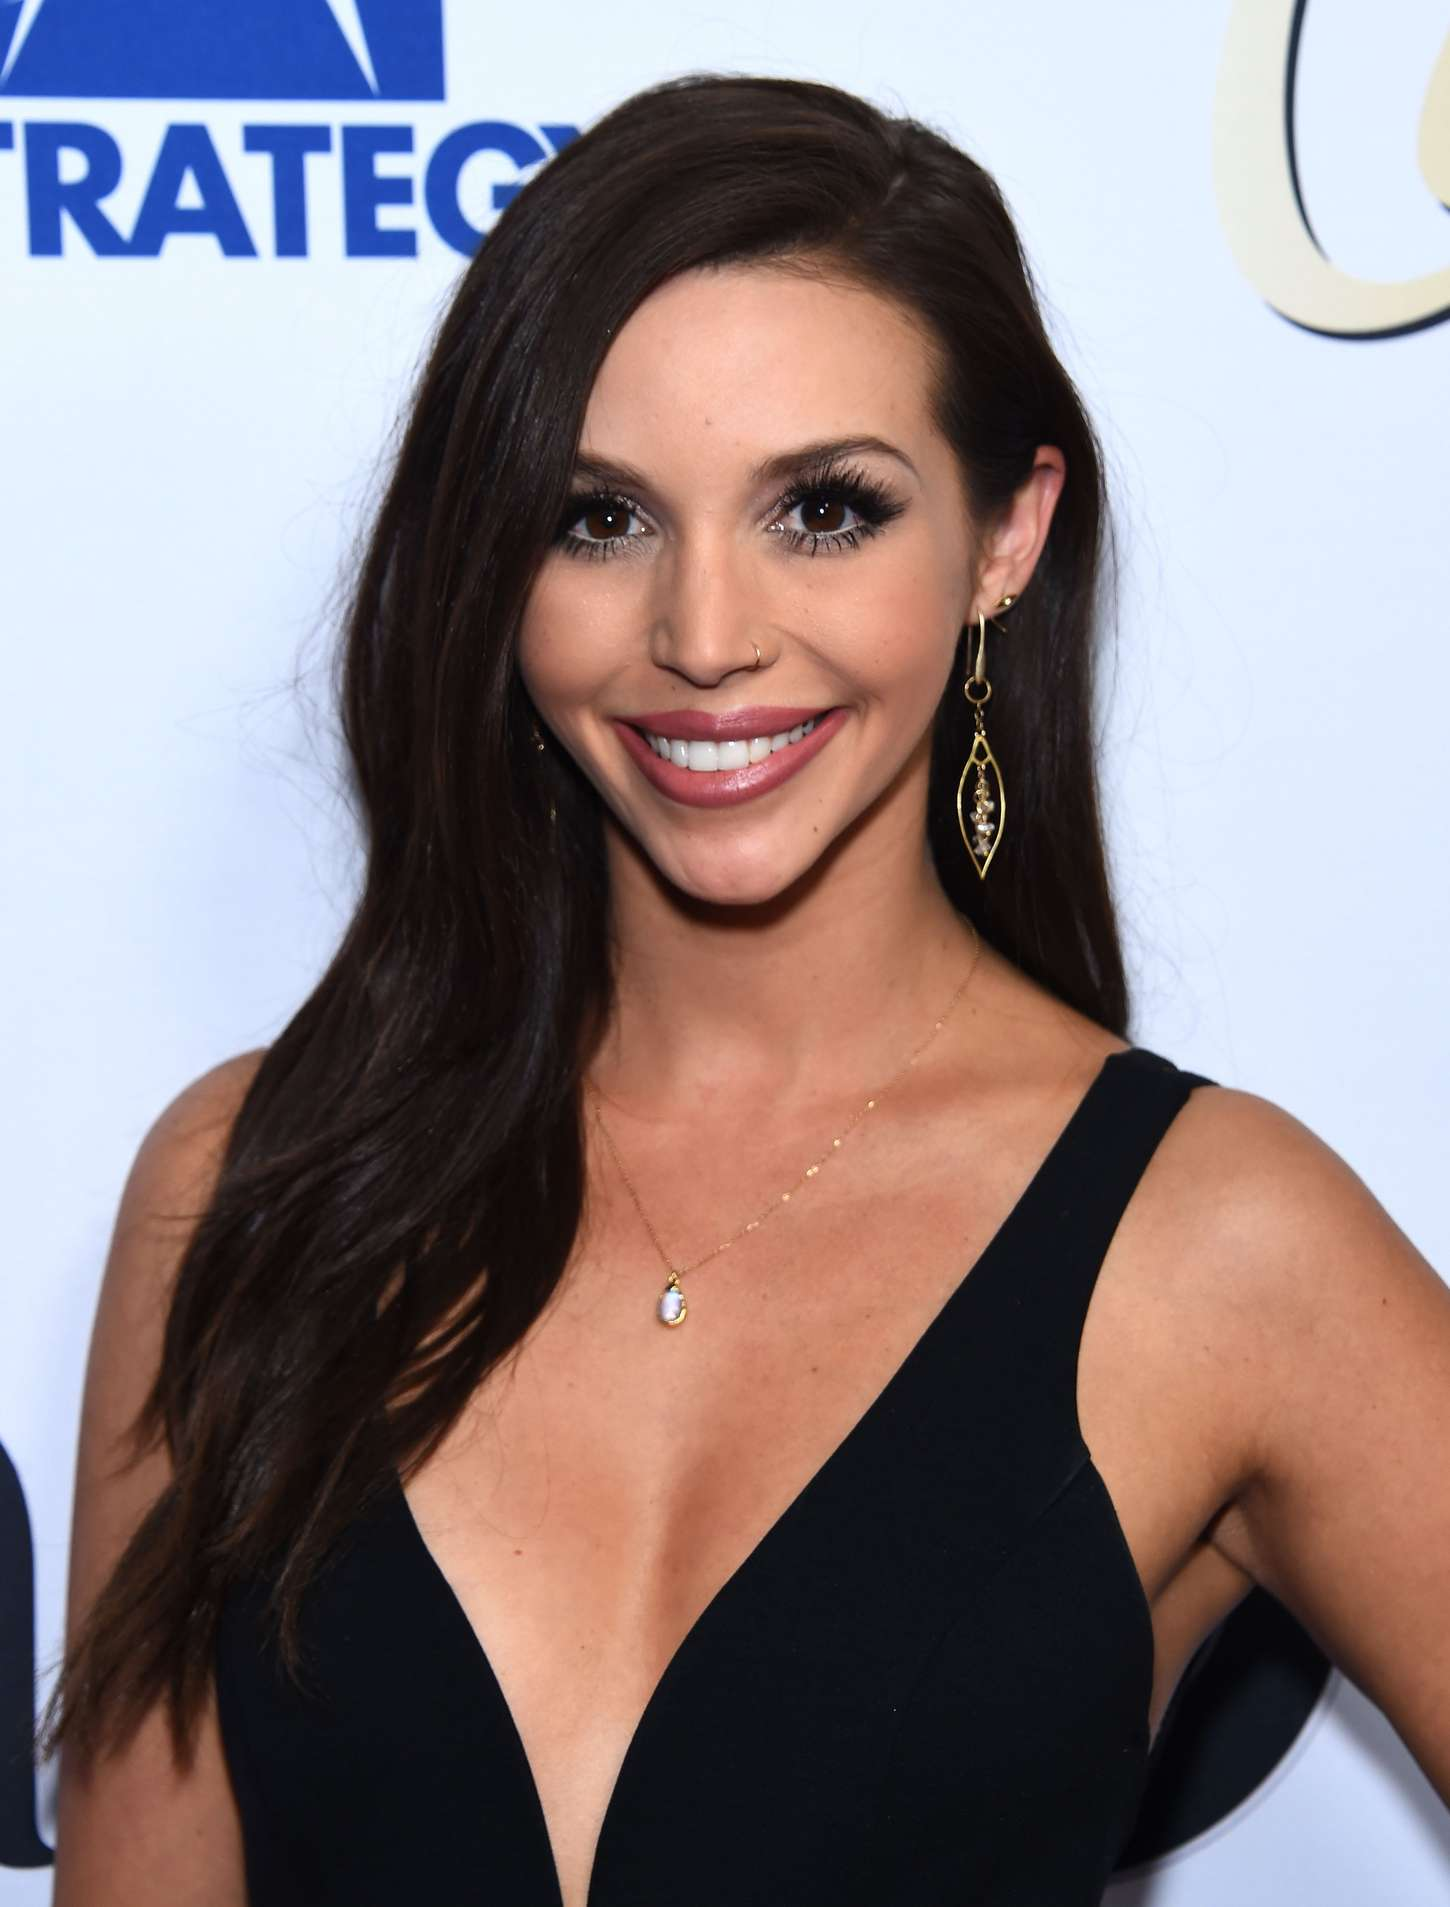 Hot Scheana Marie nudes (98 photos), Ass, Is a cute, Boobs, braless 2018